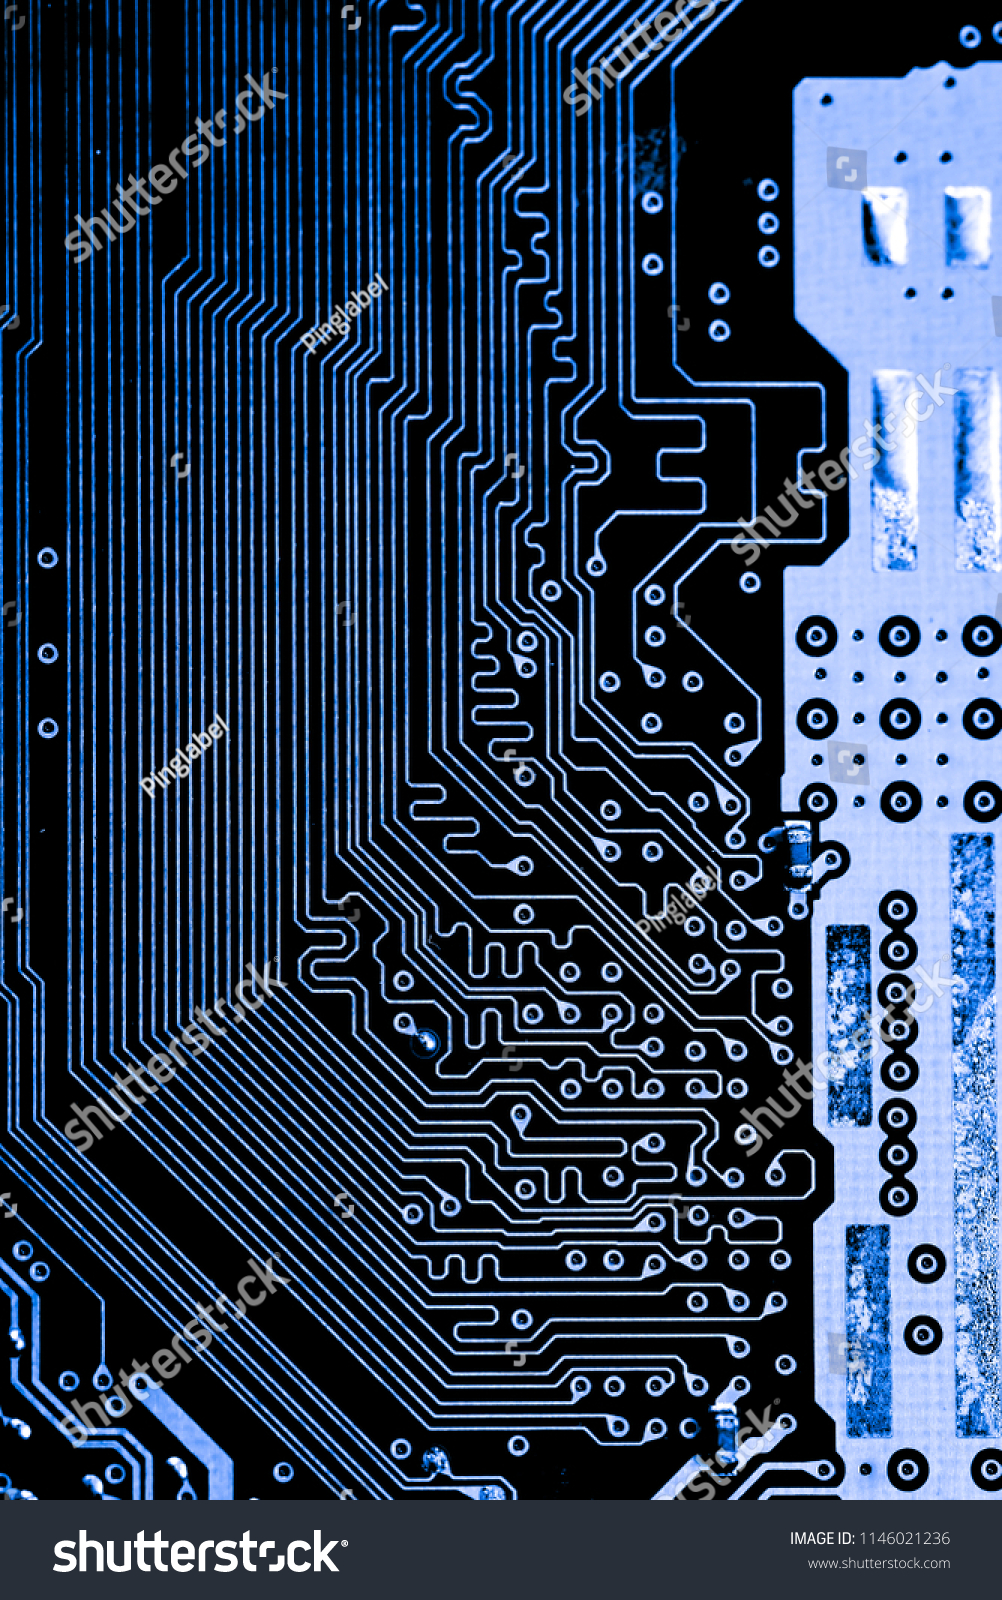 Abstractclose Mainboard Electronic Computer Background Logic Stock Circuit Main Board Royalty Free Photography Image Up Of Boardcpu Motherboard